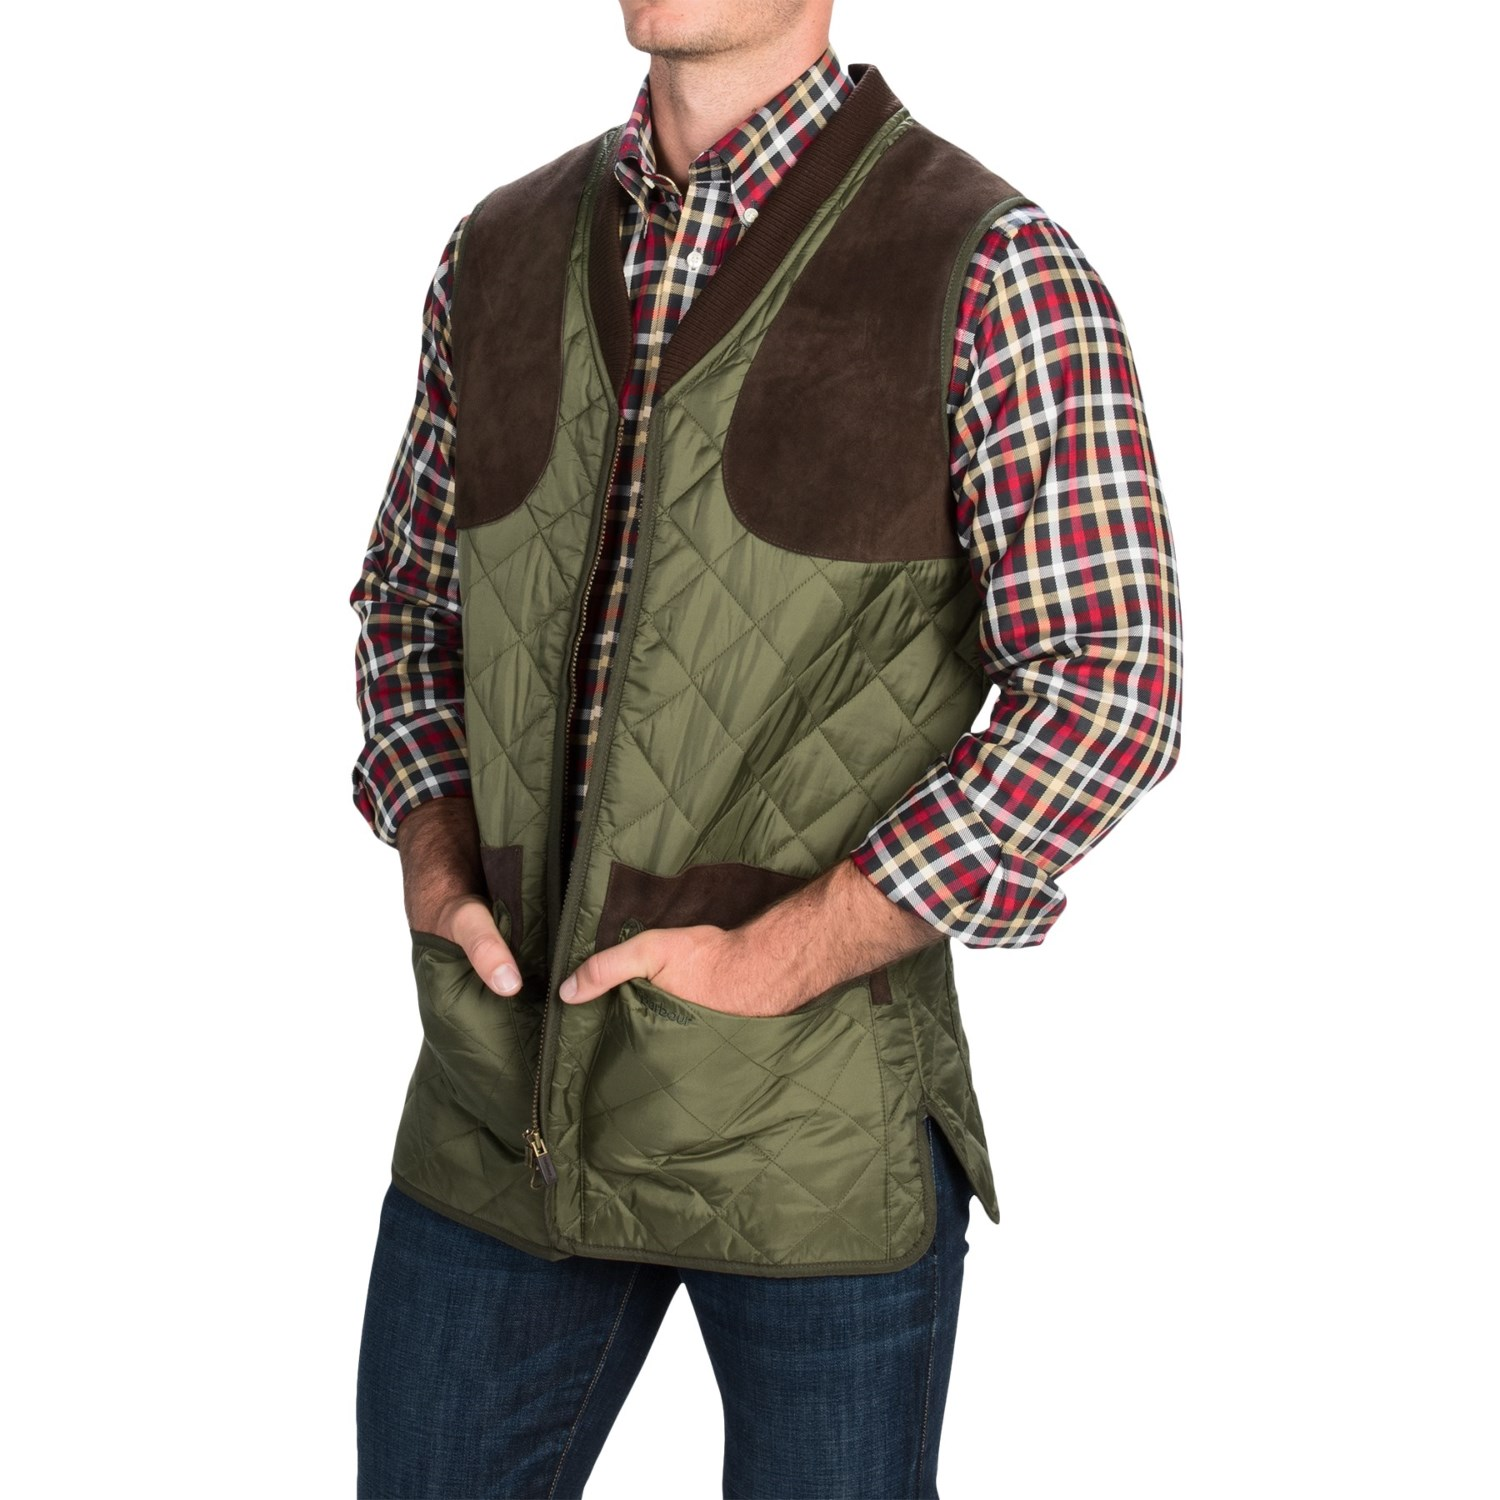 Shop for Men's Vests at REI - FREE SHIPPING With $50 minimum purchase. Top quality, great selection and expert advice you can trust. % Satisfaction Guarantee.